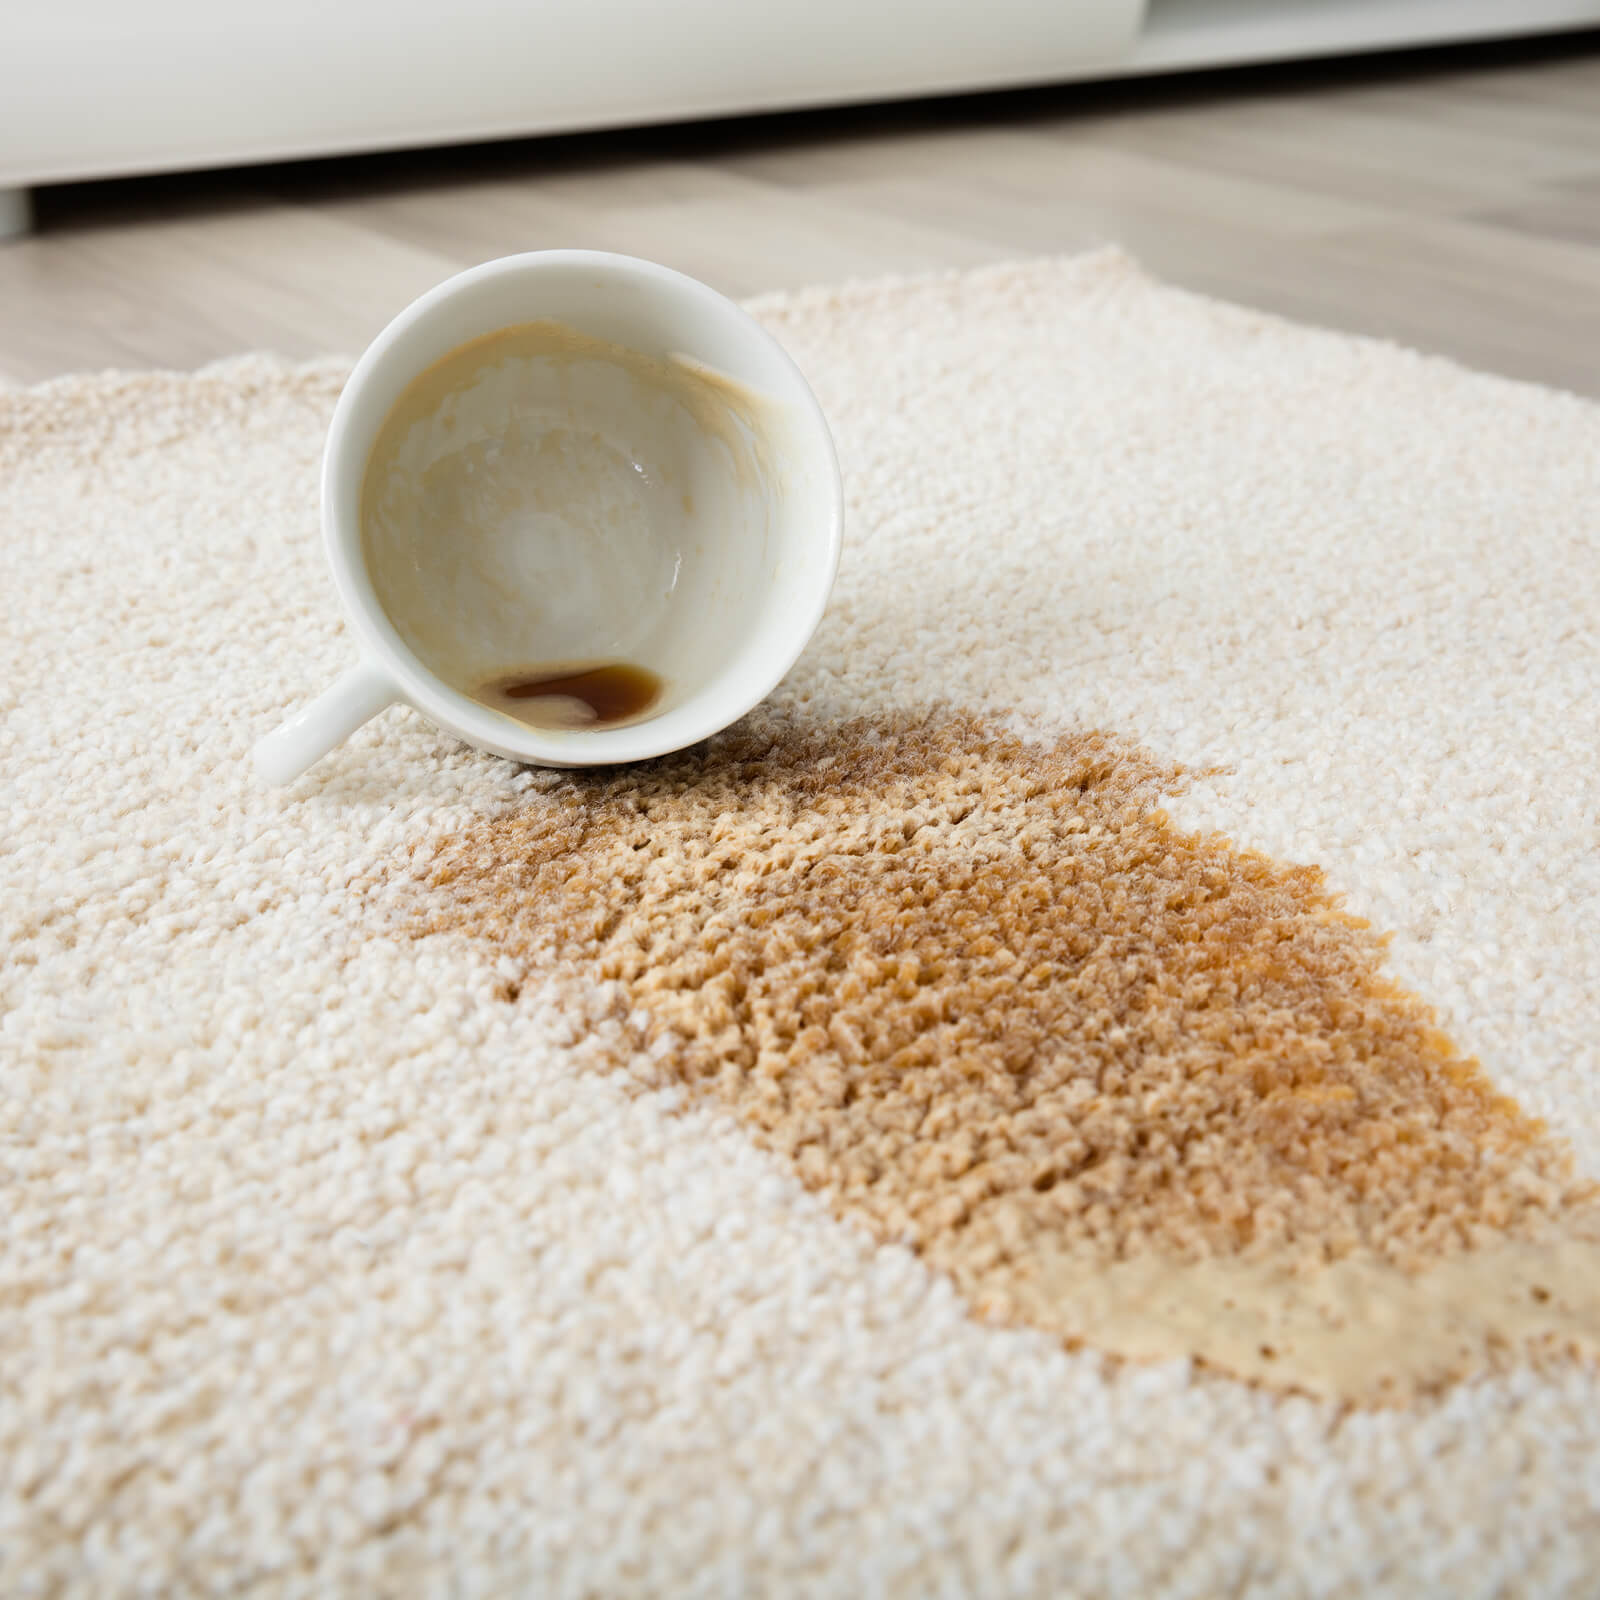 Coffee spill on area rug   Flooring Concepts